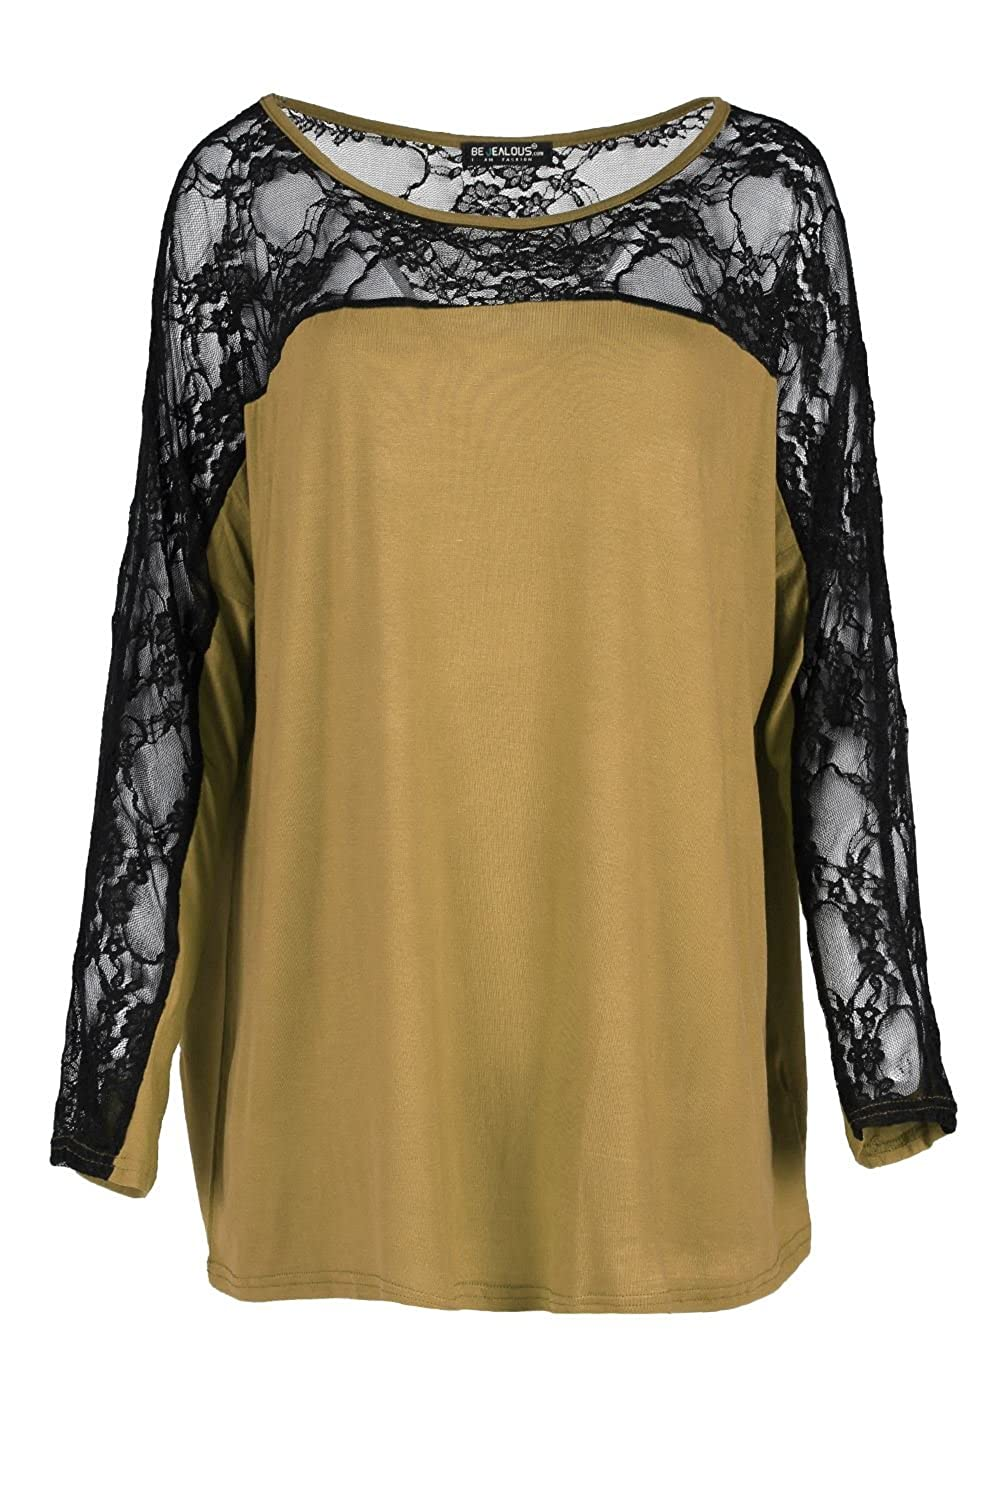 Oops Outlet Women`s Stretchy Baggy Top Jersey Oversized Top Lace Mesh T Shirt